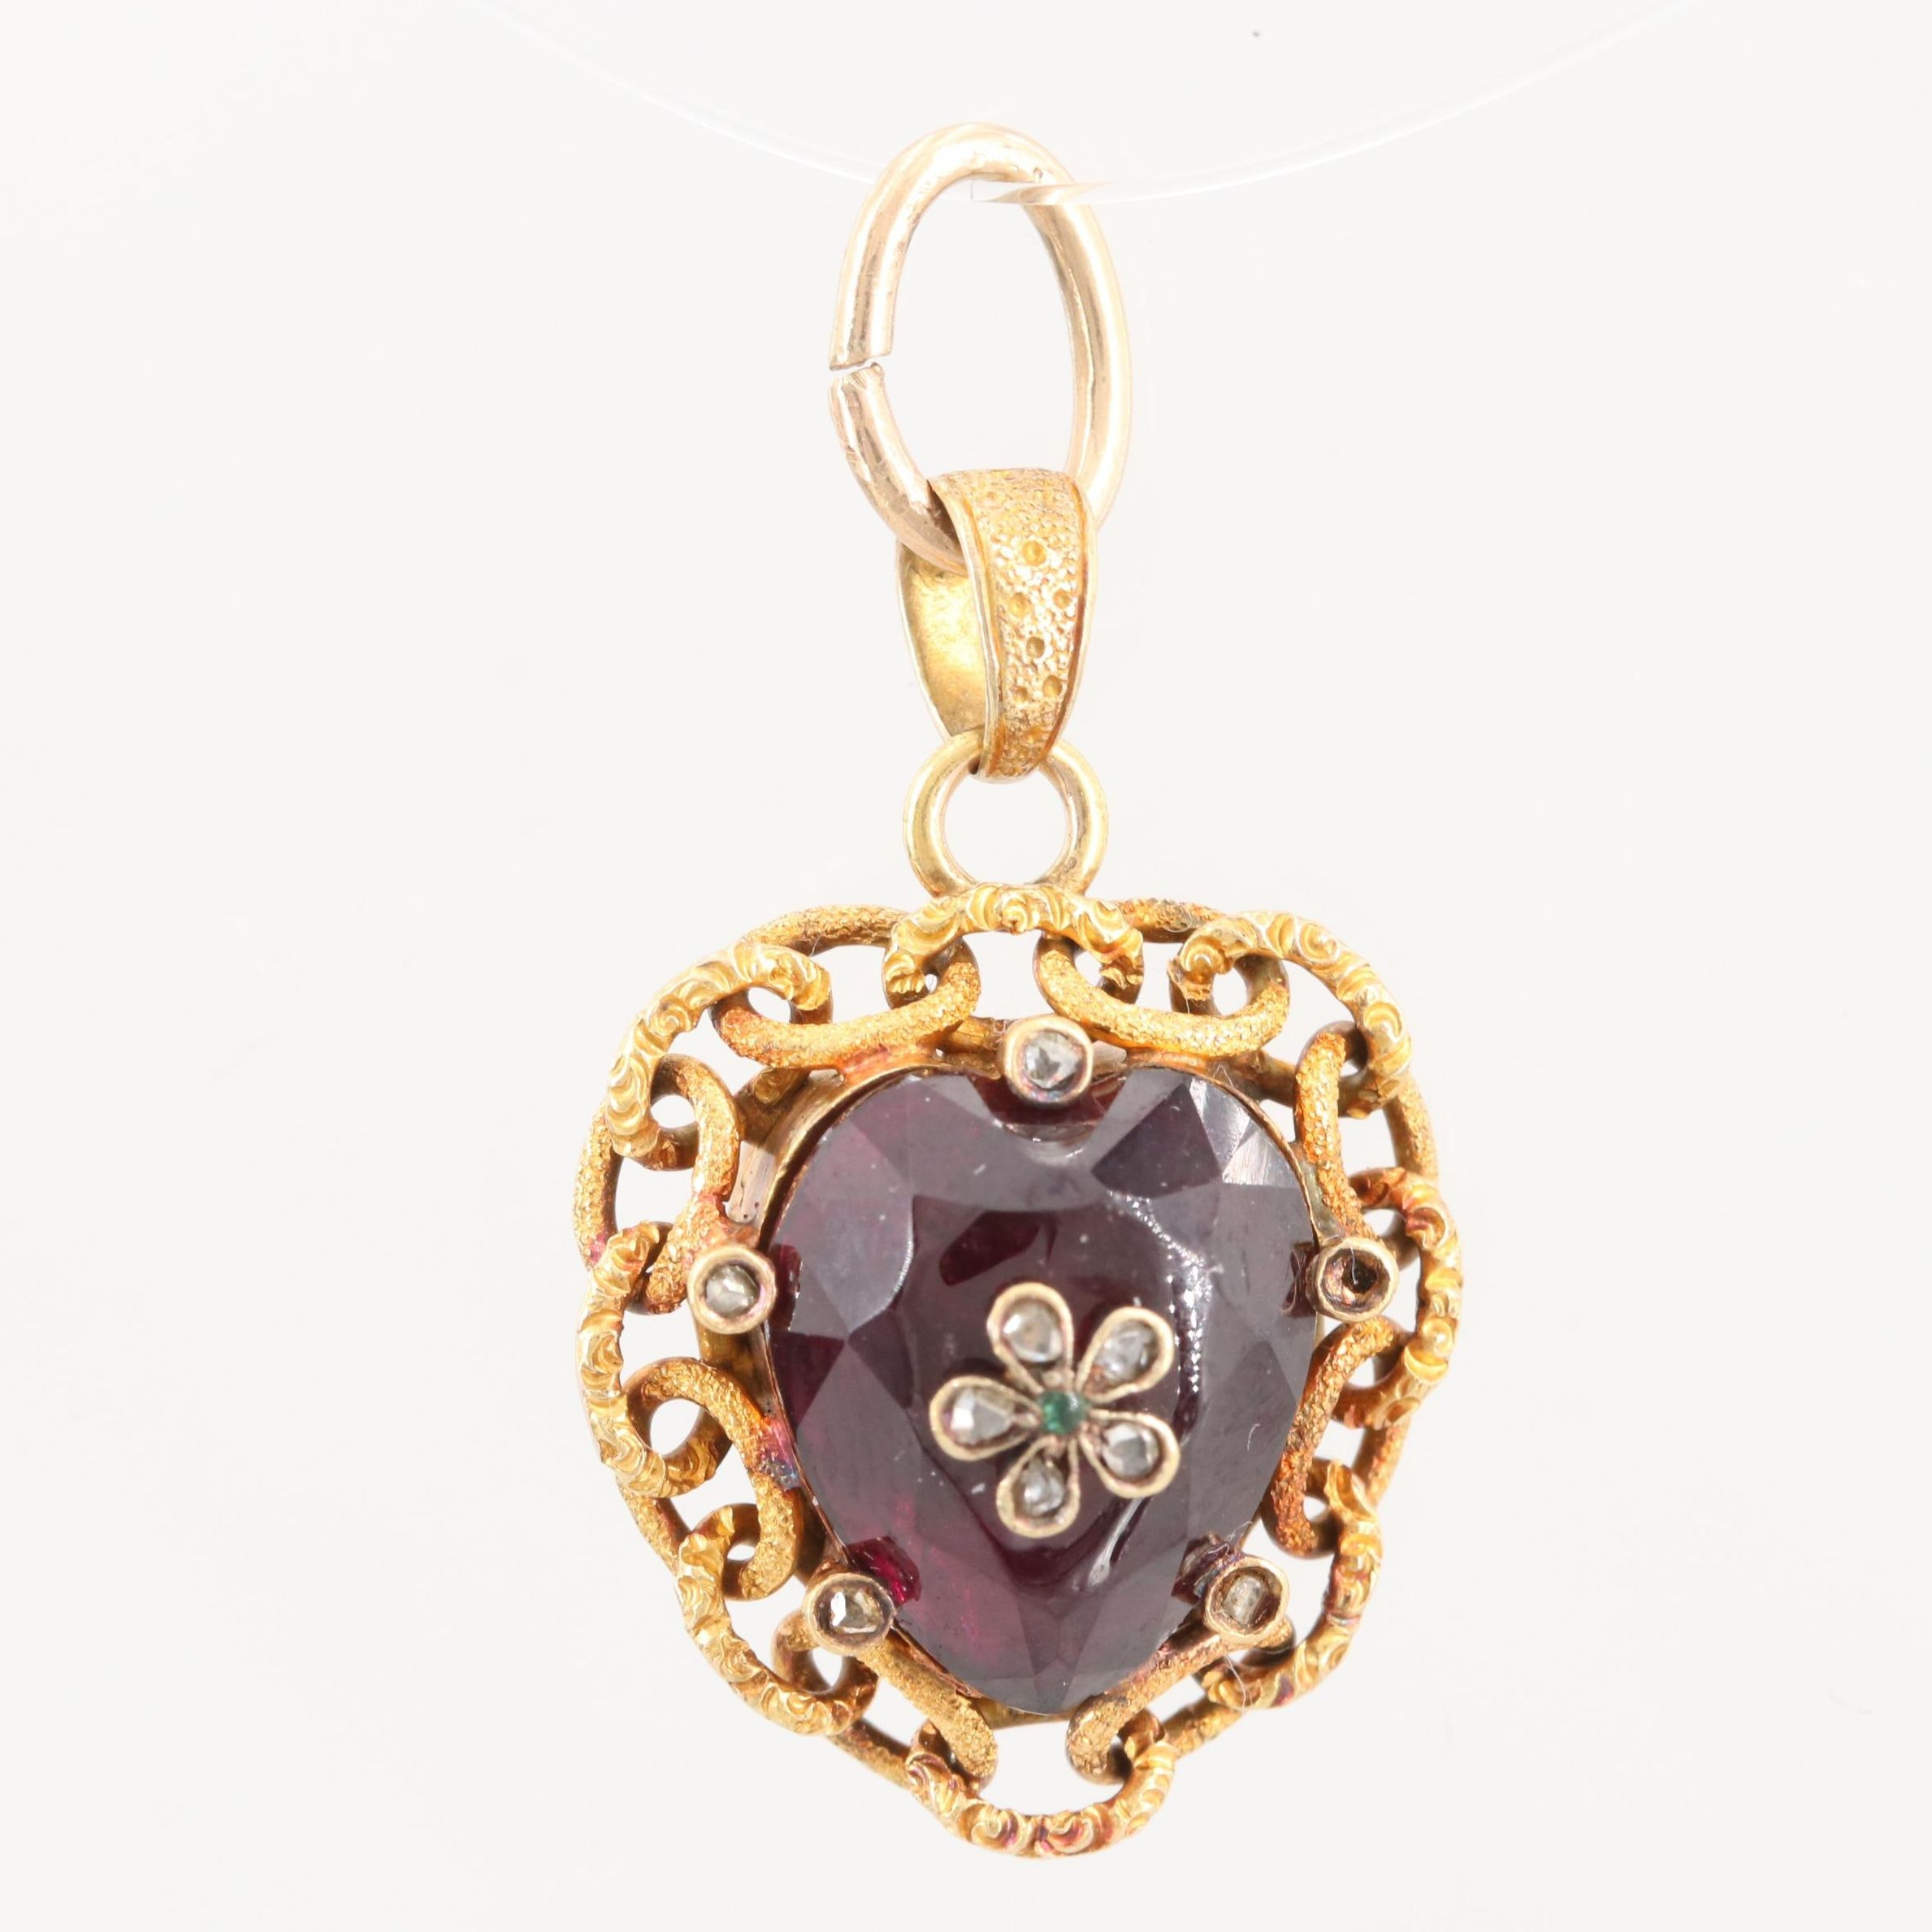 Victorian 14K Yellow Gold Rhodolite Garnet Locket Pendant with Diamond Accents